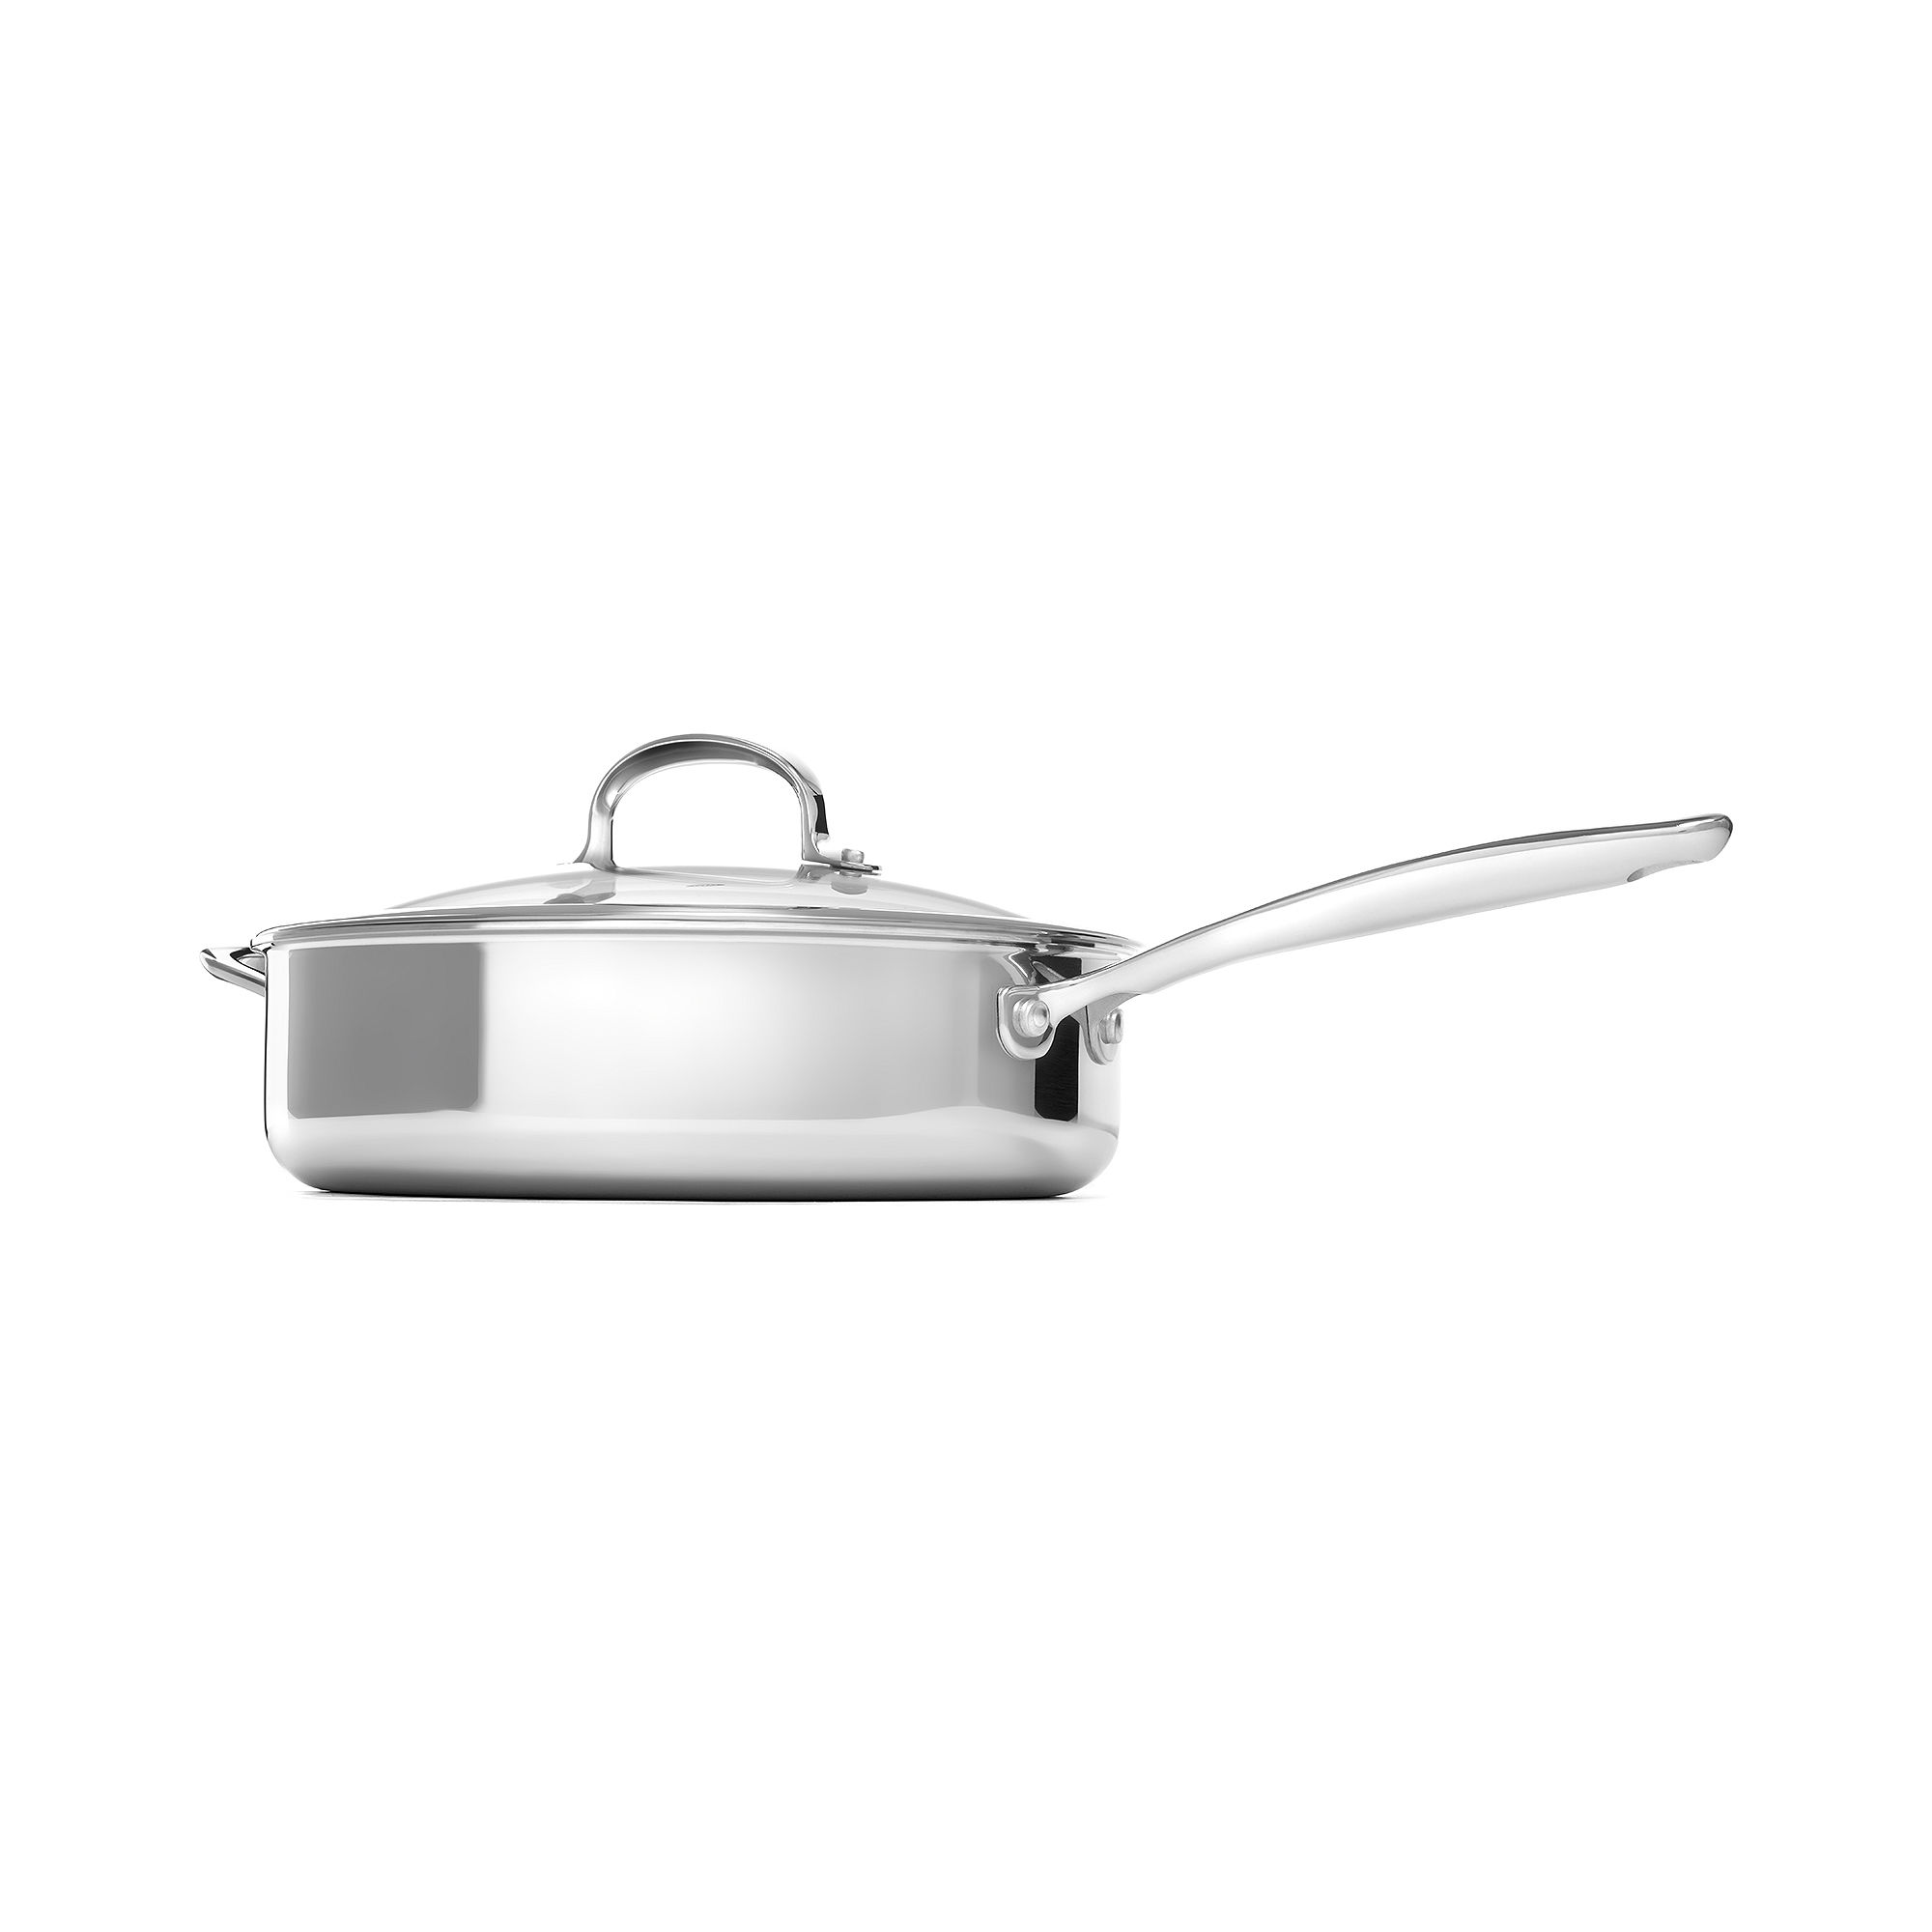 "OXO Pro 10"" Stainless Steel Skillet with Lid"